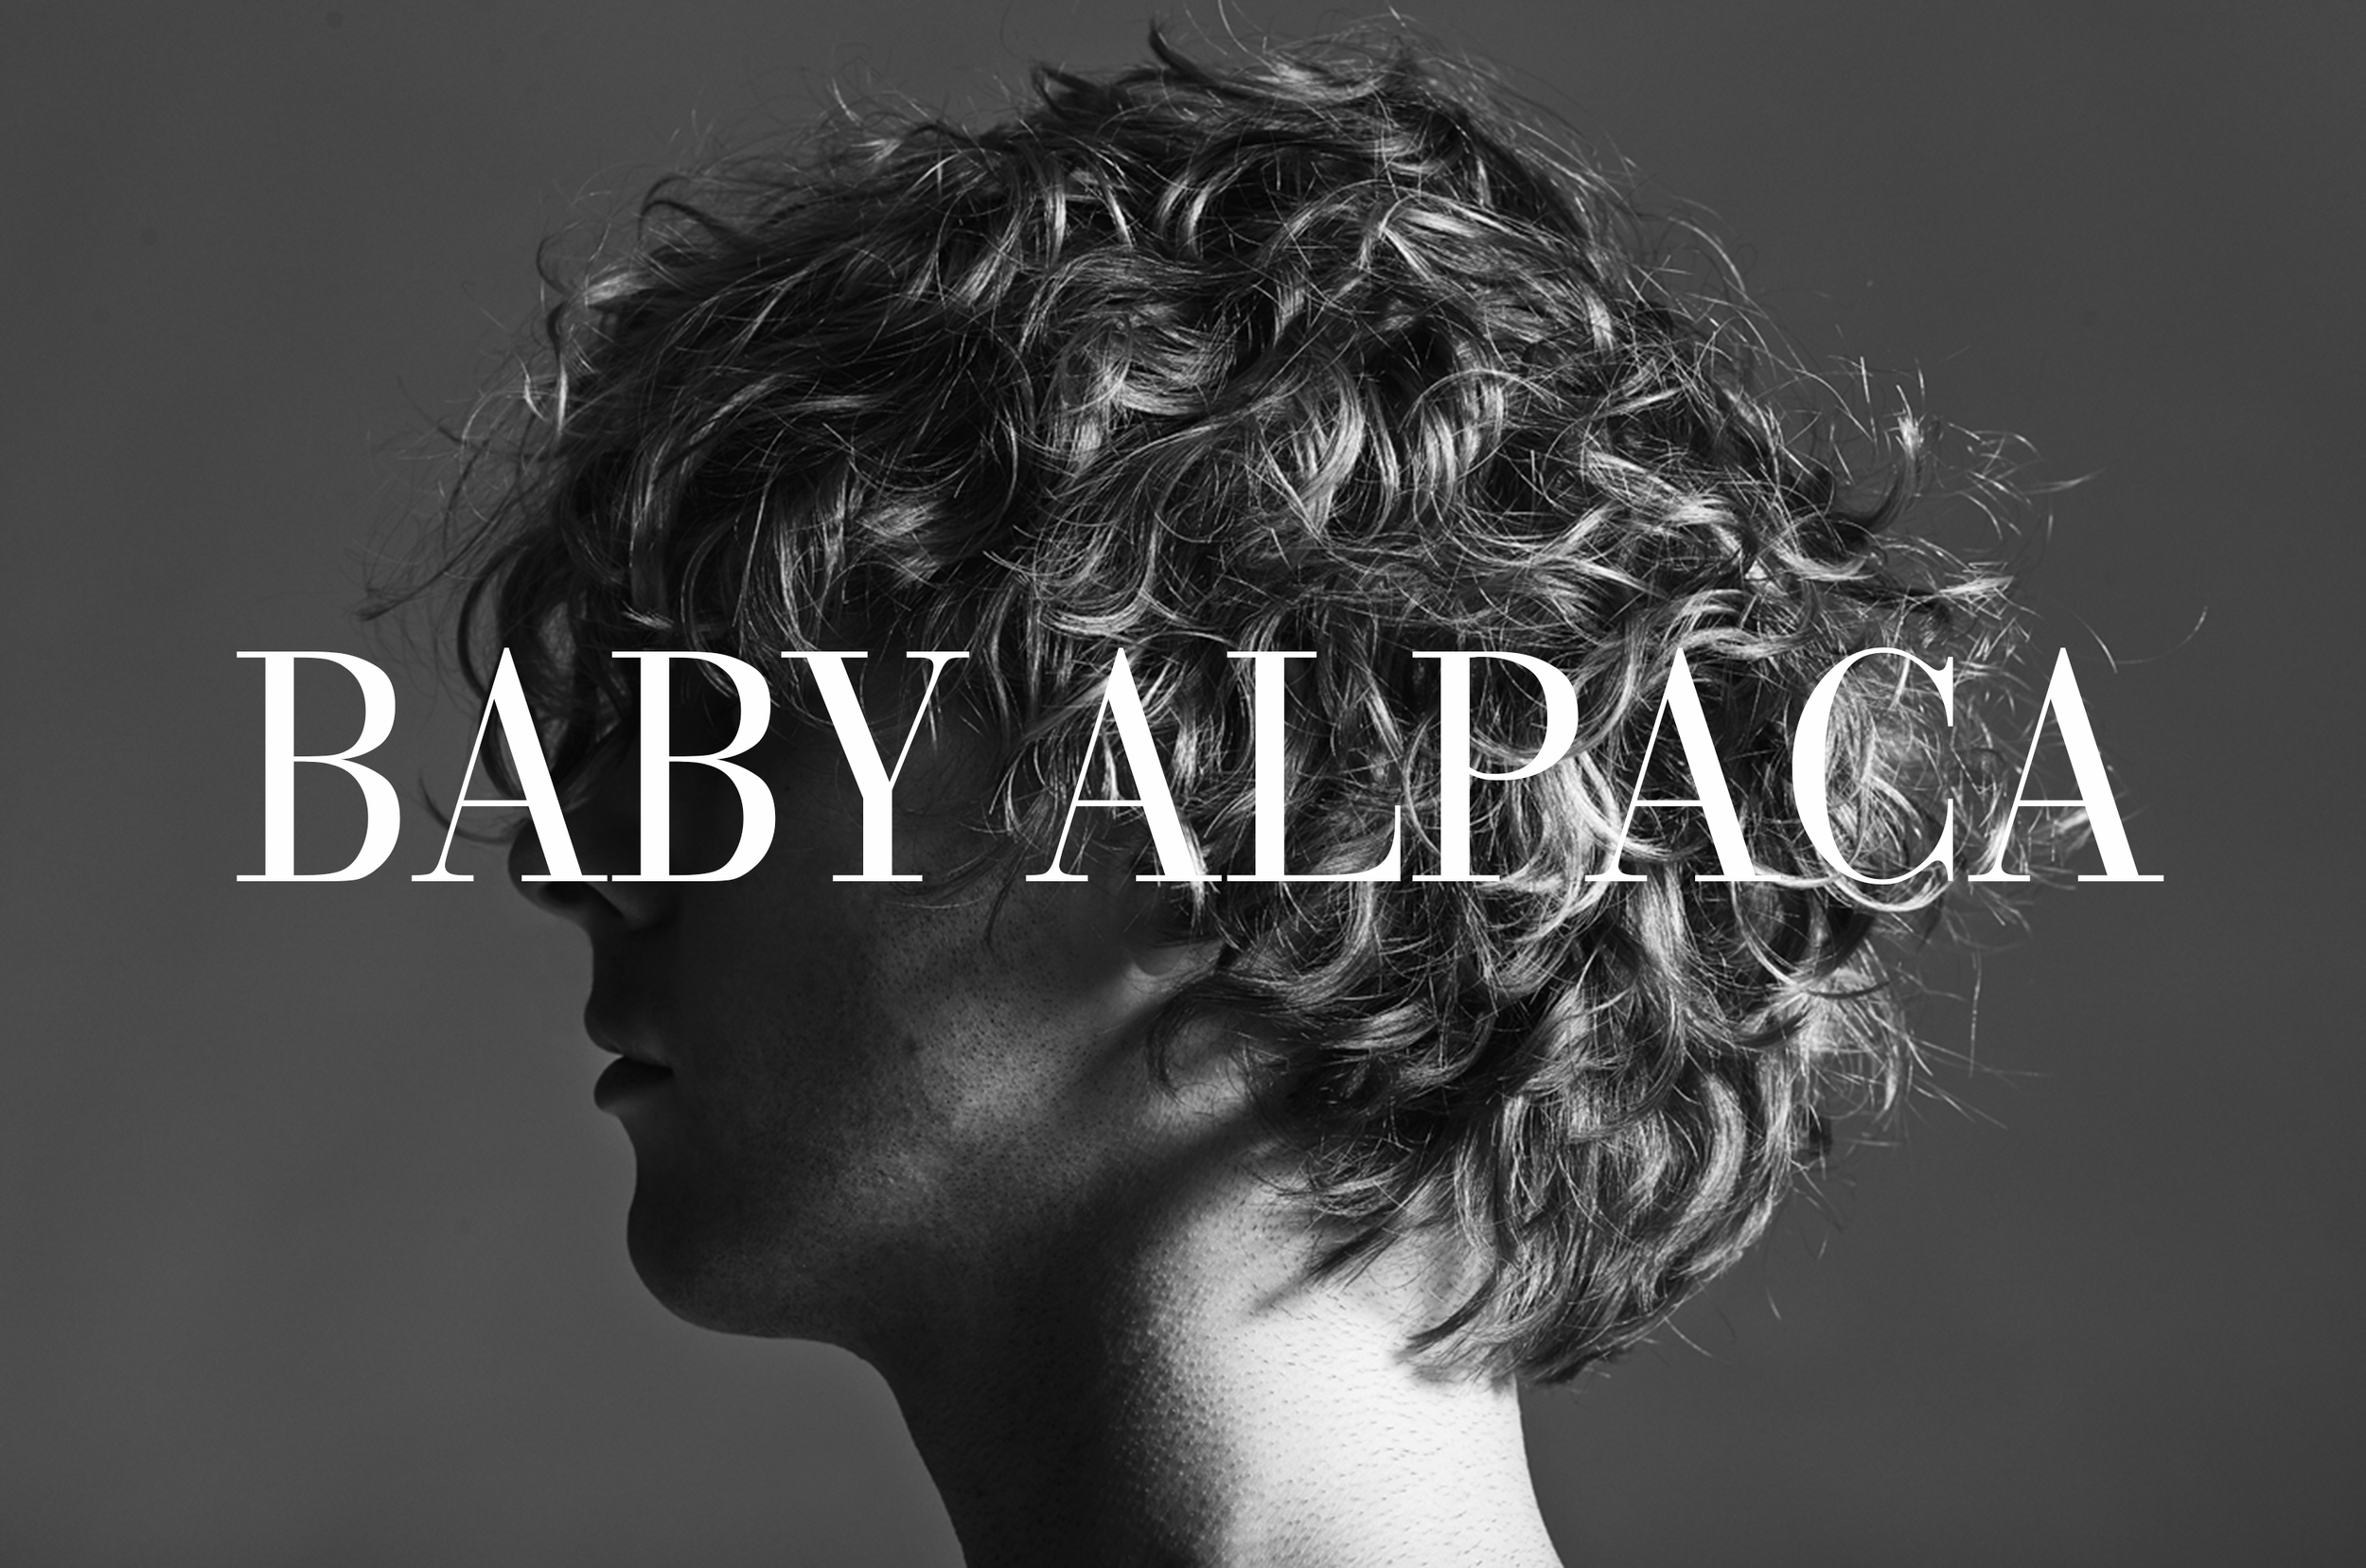 MUSIC  Baby Alpacais a summery medley of heartwarming dreams, alluring undertones, and haunting rhythms, all wrapped up in ethereal goodness.